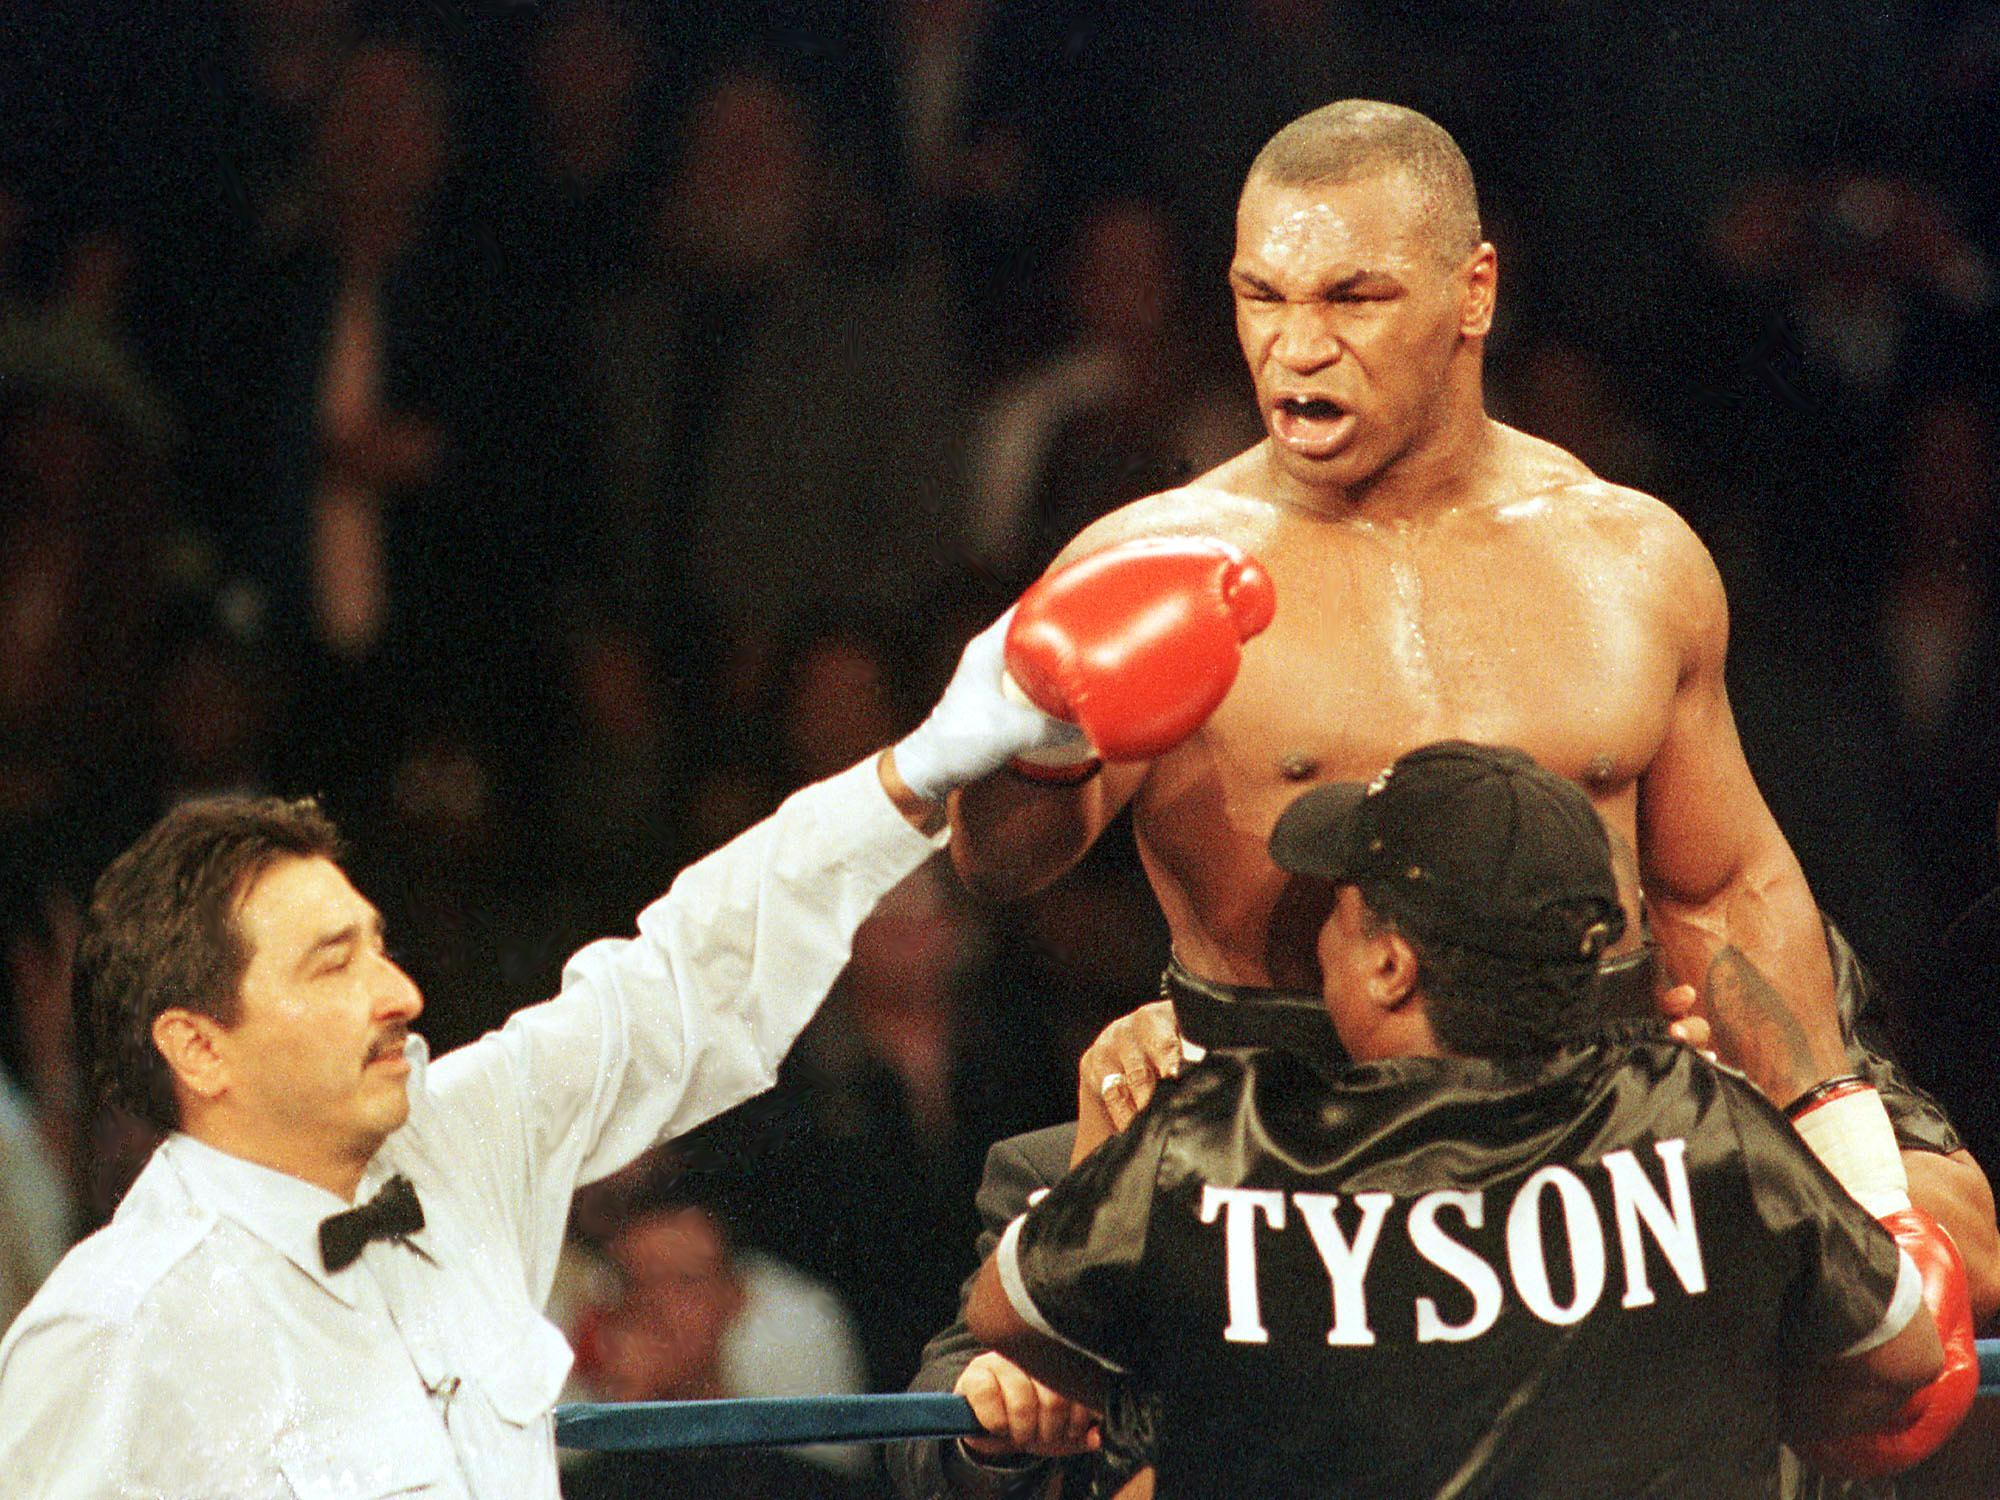 Mike Tyson said there weren't many positives about his childhood.